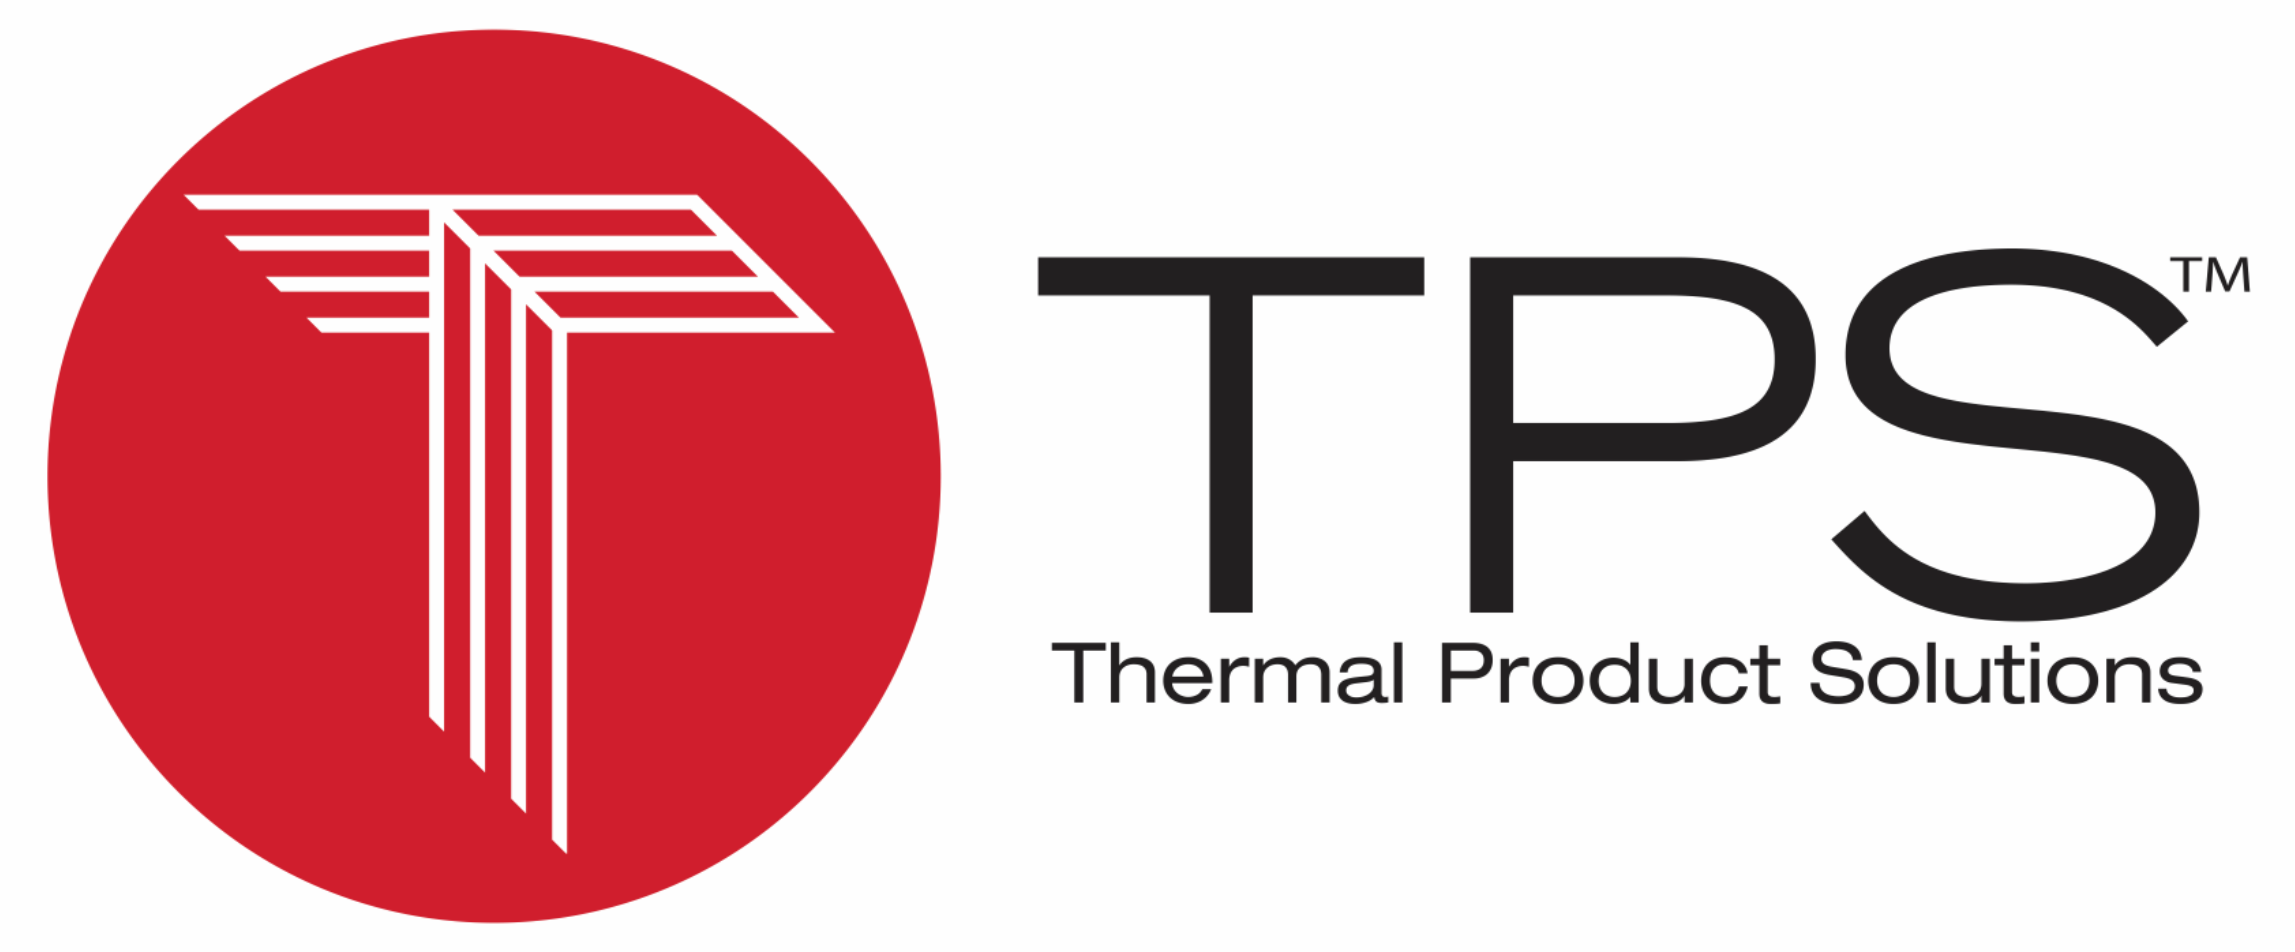 Thermal Product Solutions logo